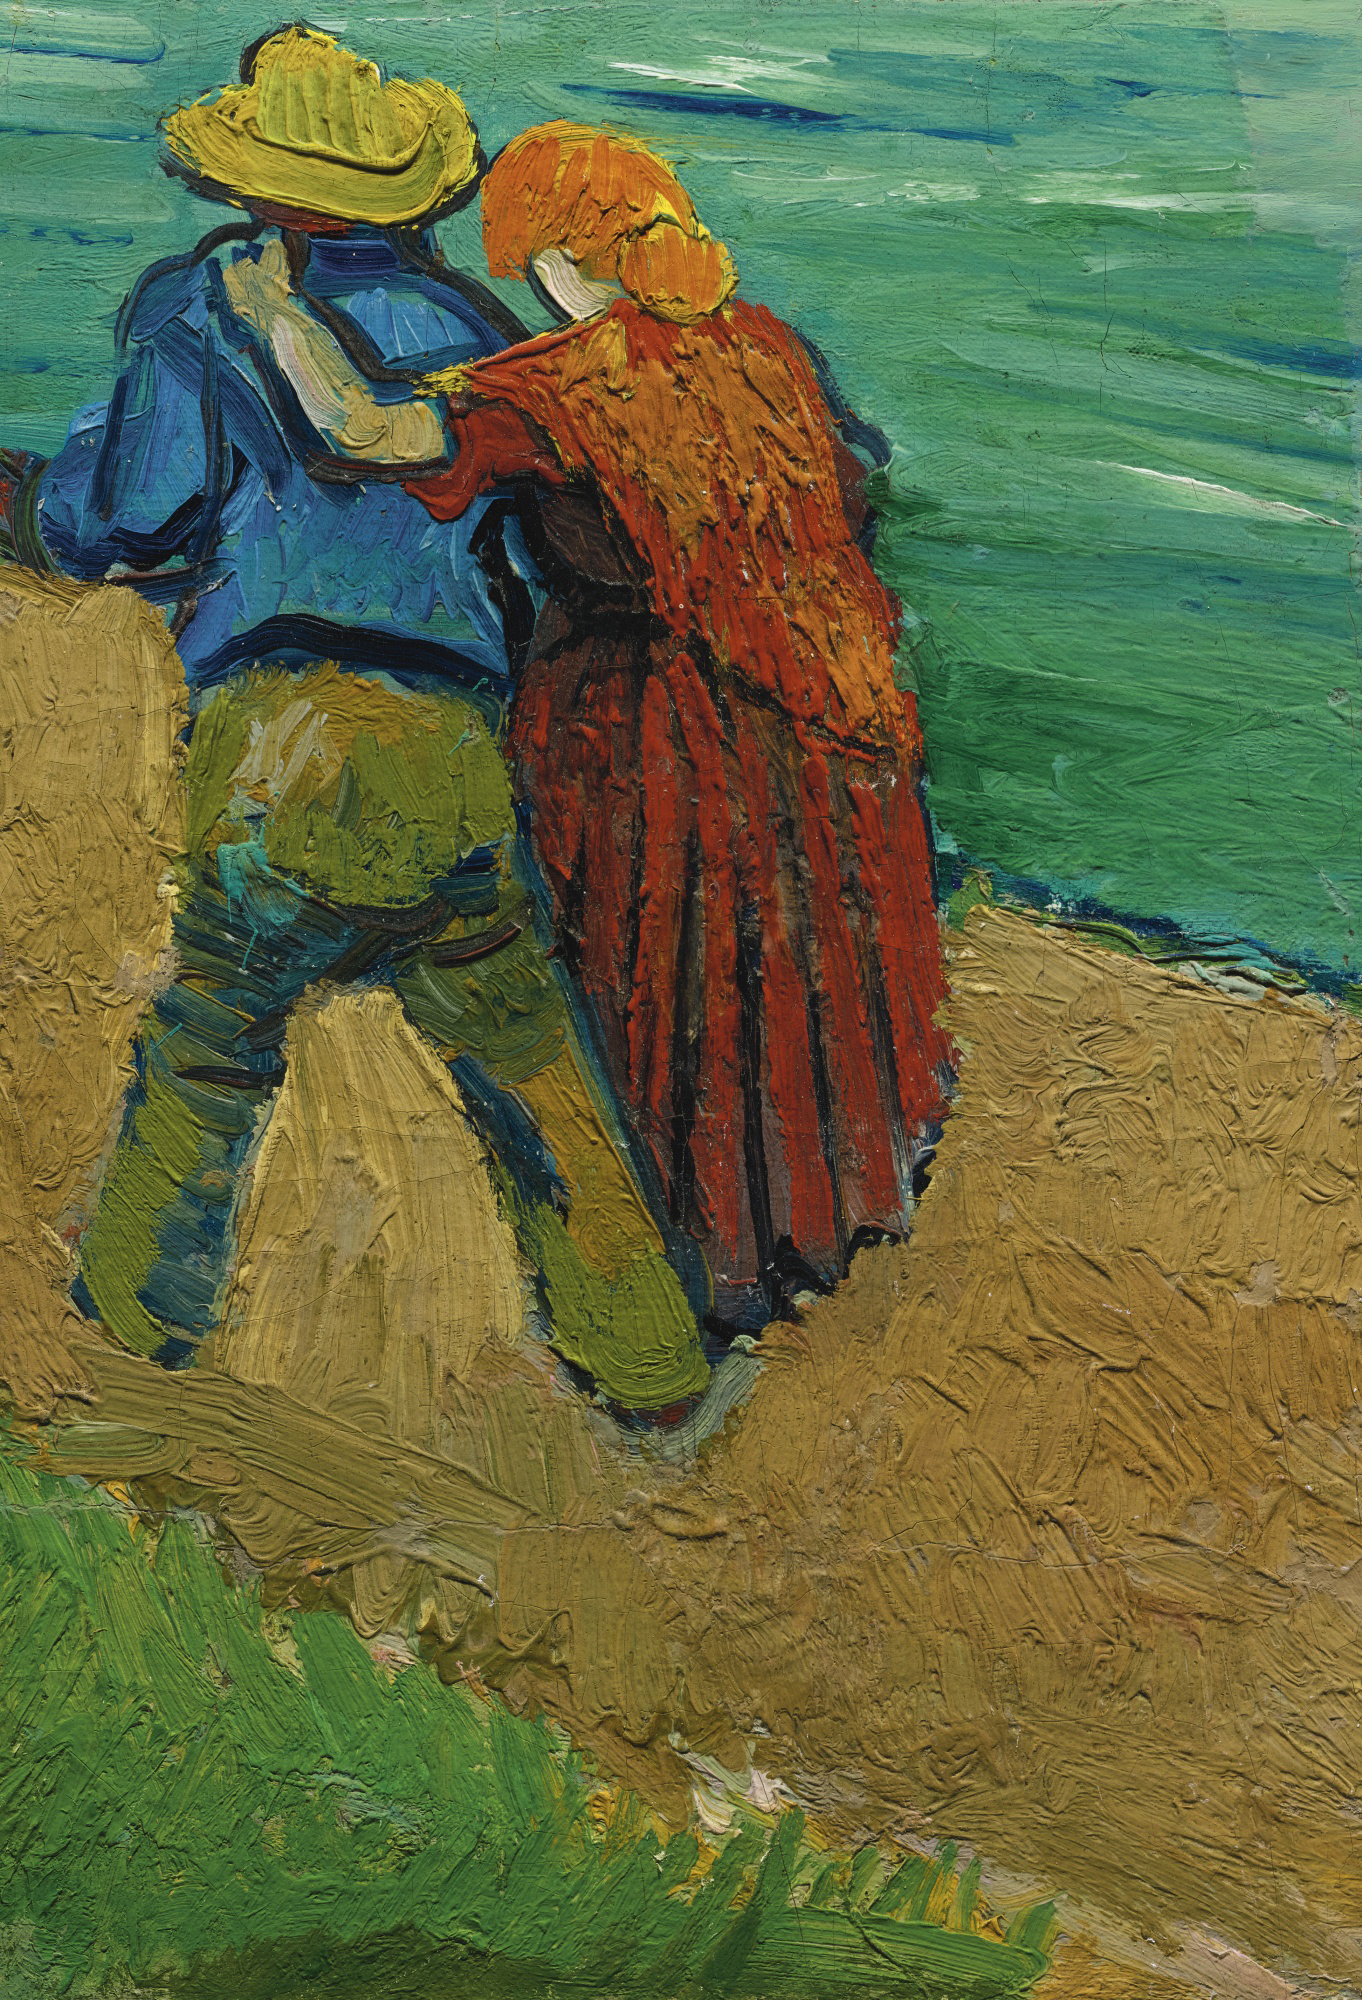 Van Gogh 1888-03, Arles - Two Lovers (Fragment) F 544 JH 1369